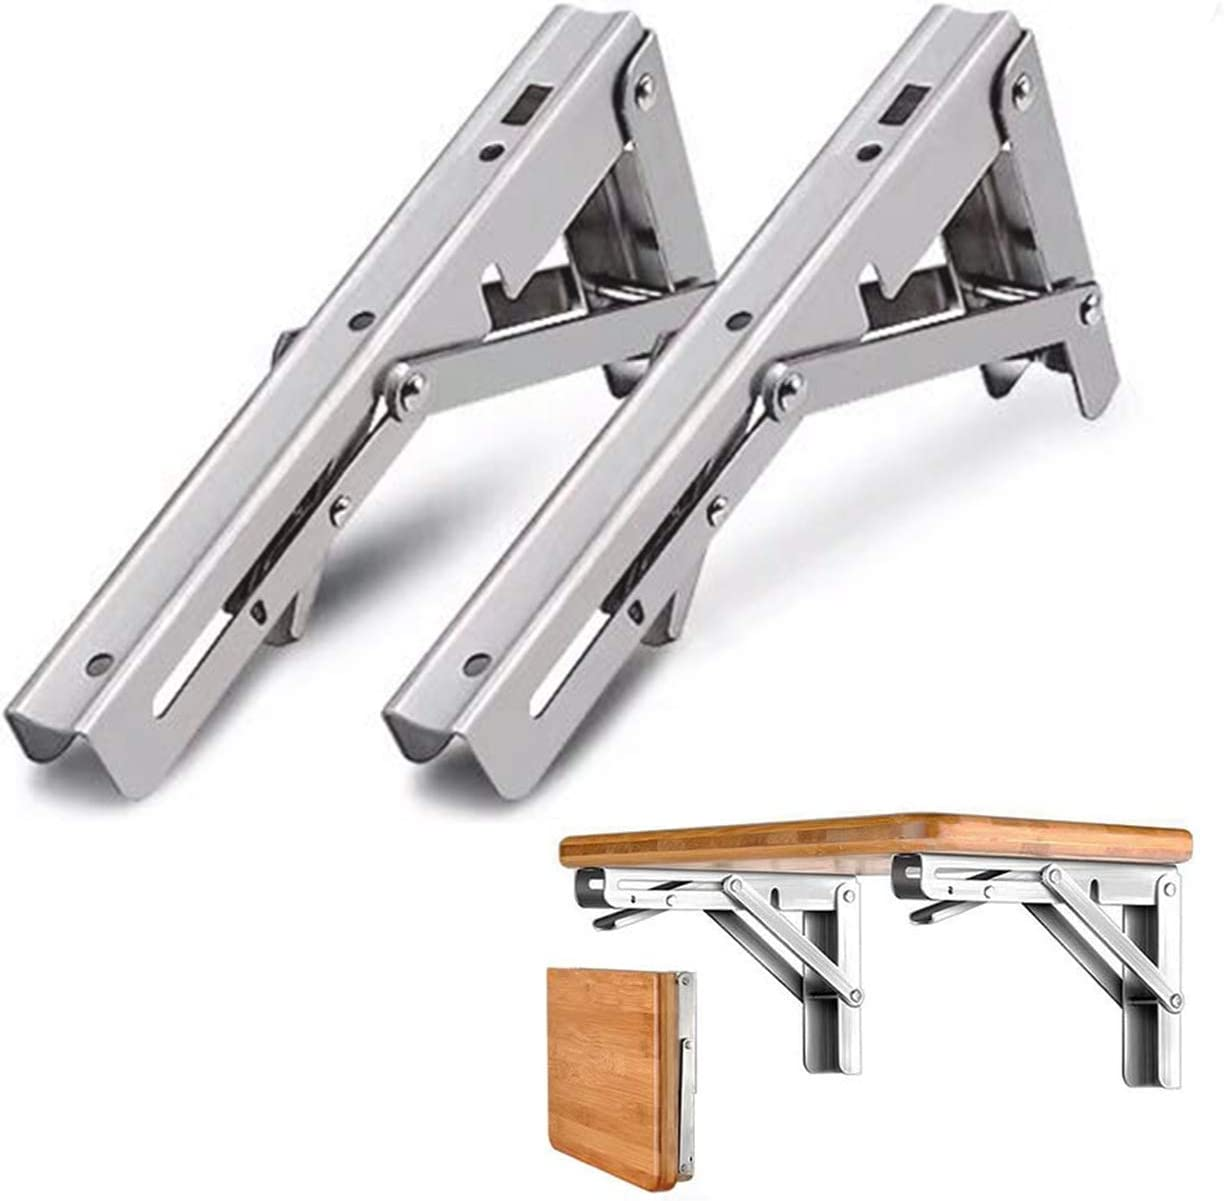 Folding Shelf Brackets 12 Inch, Heavy Duty Stainless Steel Collapsible Shelf Bracket Wall Mounted DIY Triangle Brackets for Bench Table, Space Saving DIY Bracket Max Load 300 lb, 2Pack